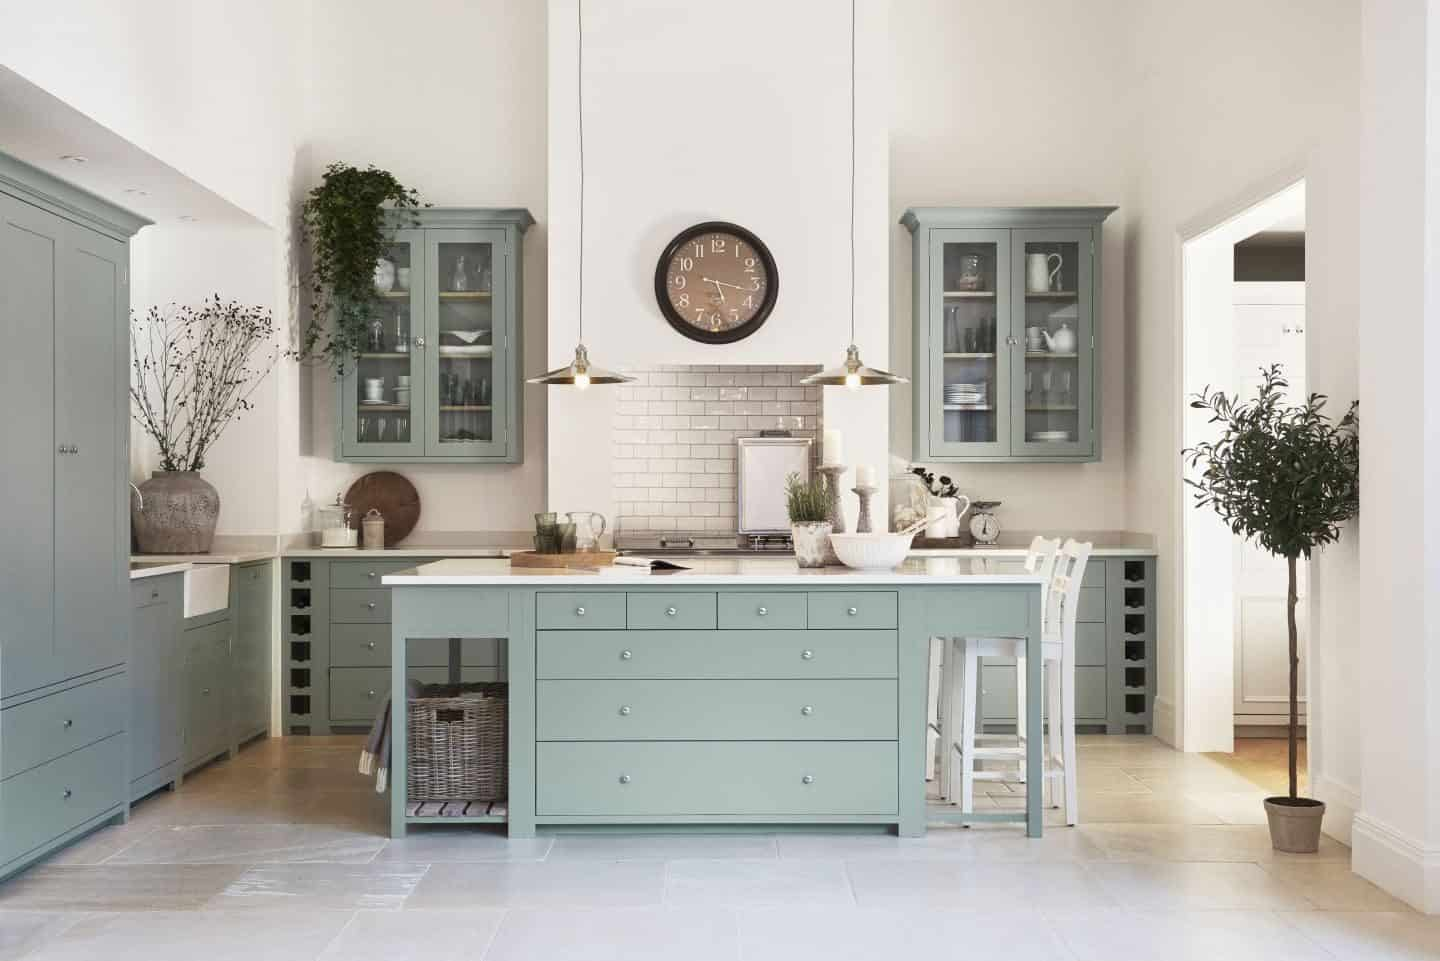 Neptune Edgbaston - Suffolk kitchen hand-painted in Sage from £12,000